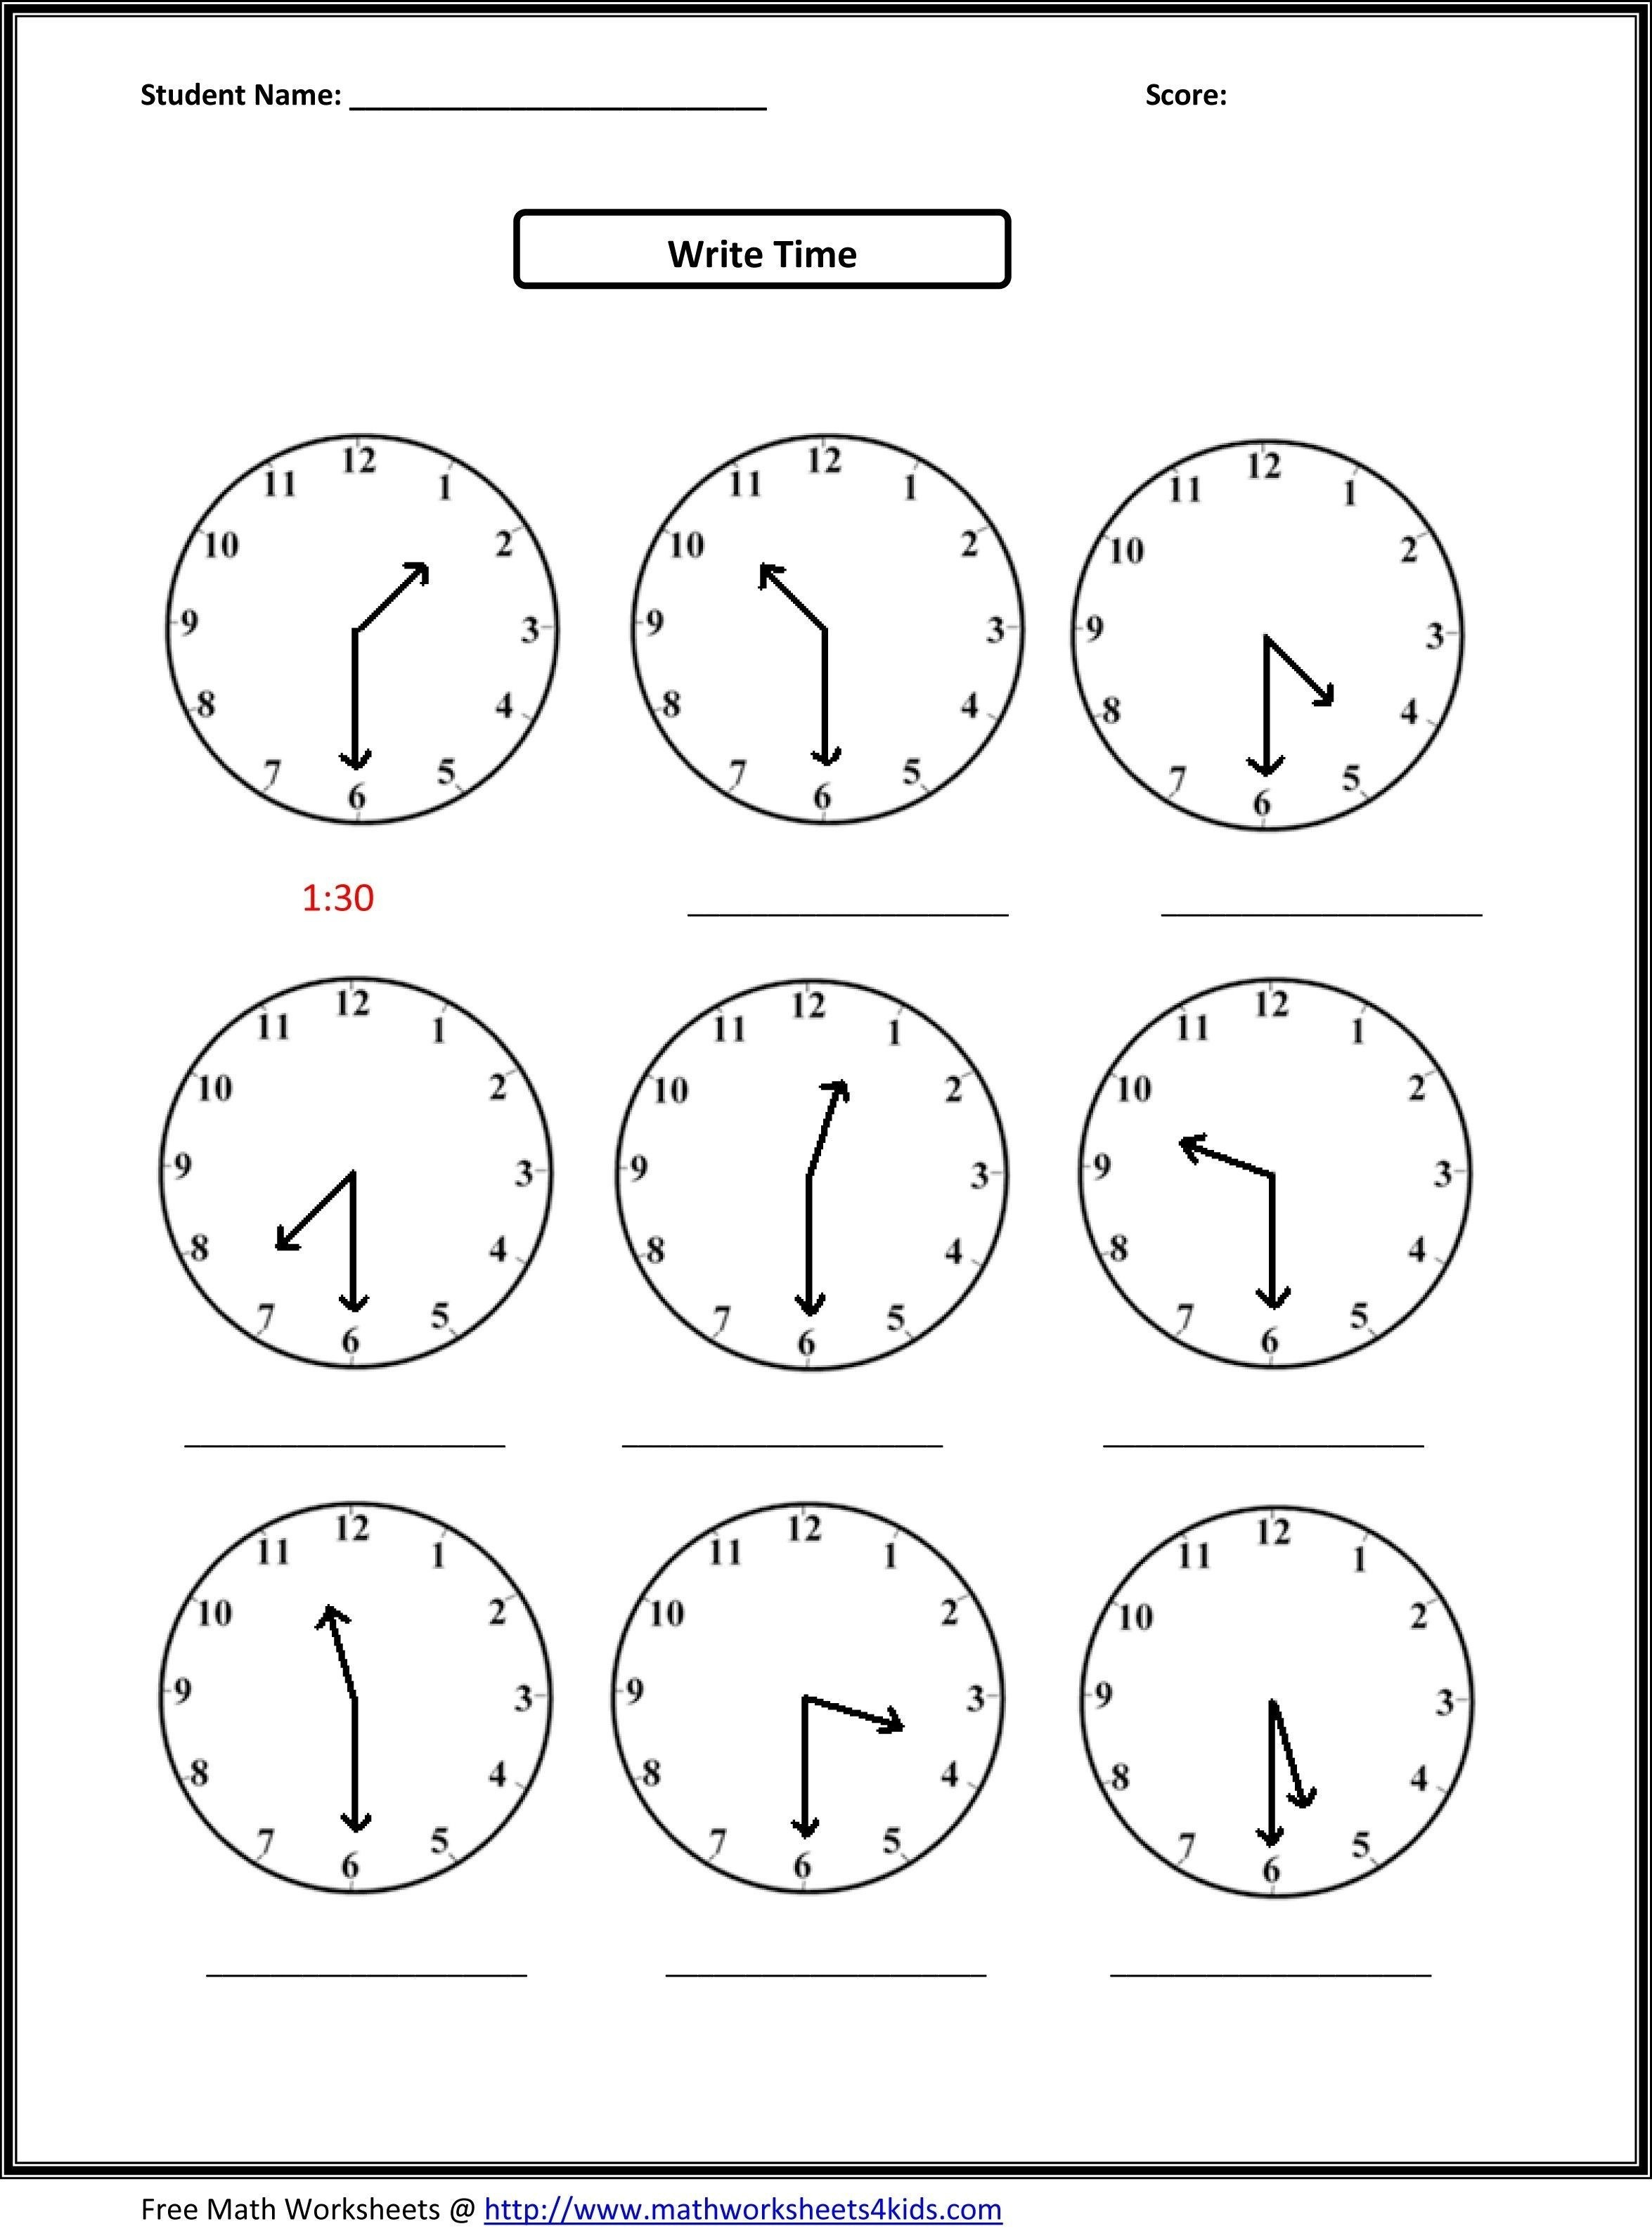 √ Telling Time Printable Worksheets First Grade Inspirationa - Free | Free Printable Math Worksheets For 1St Grade